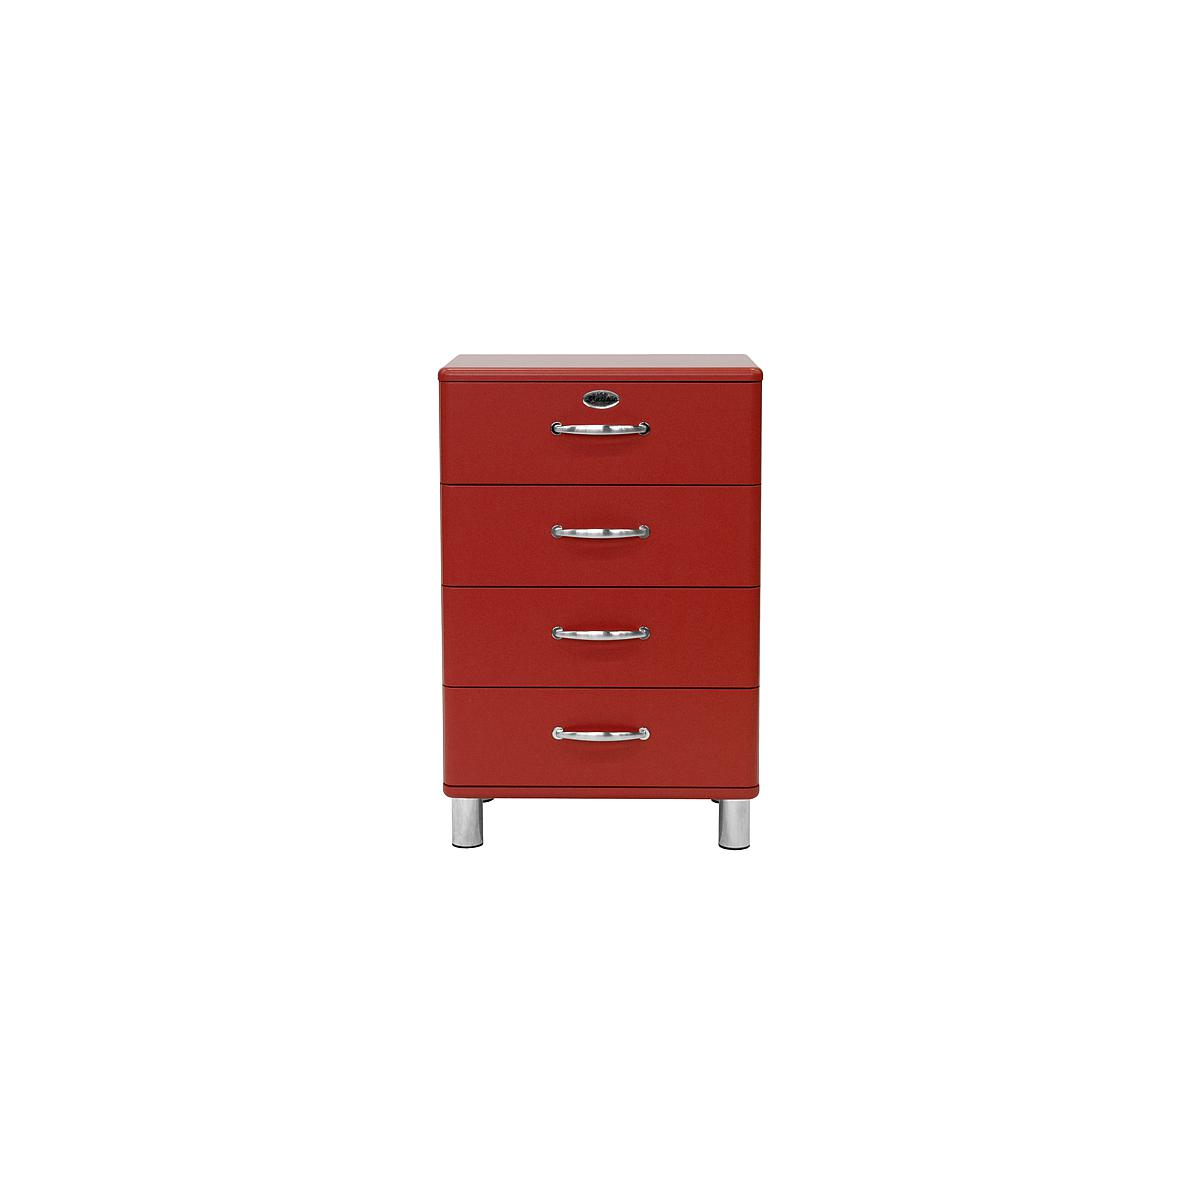 MALIBU by Tenzo Commode basse et large 4 tiroirs - Rouge